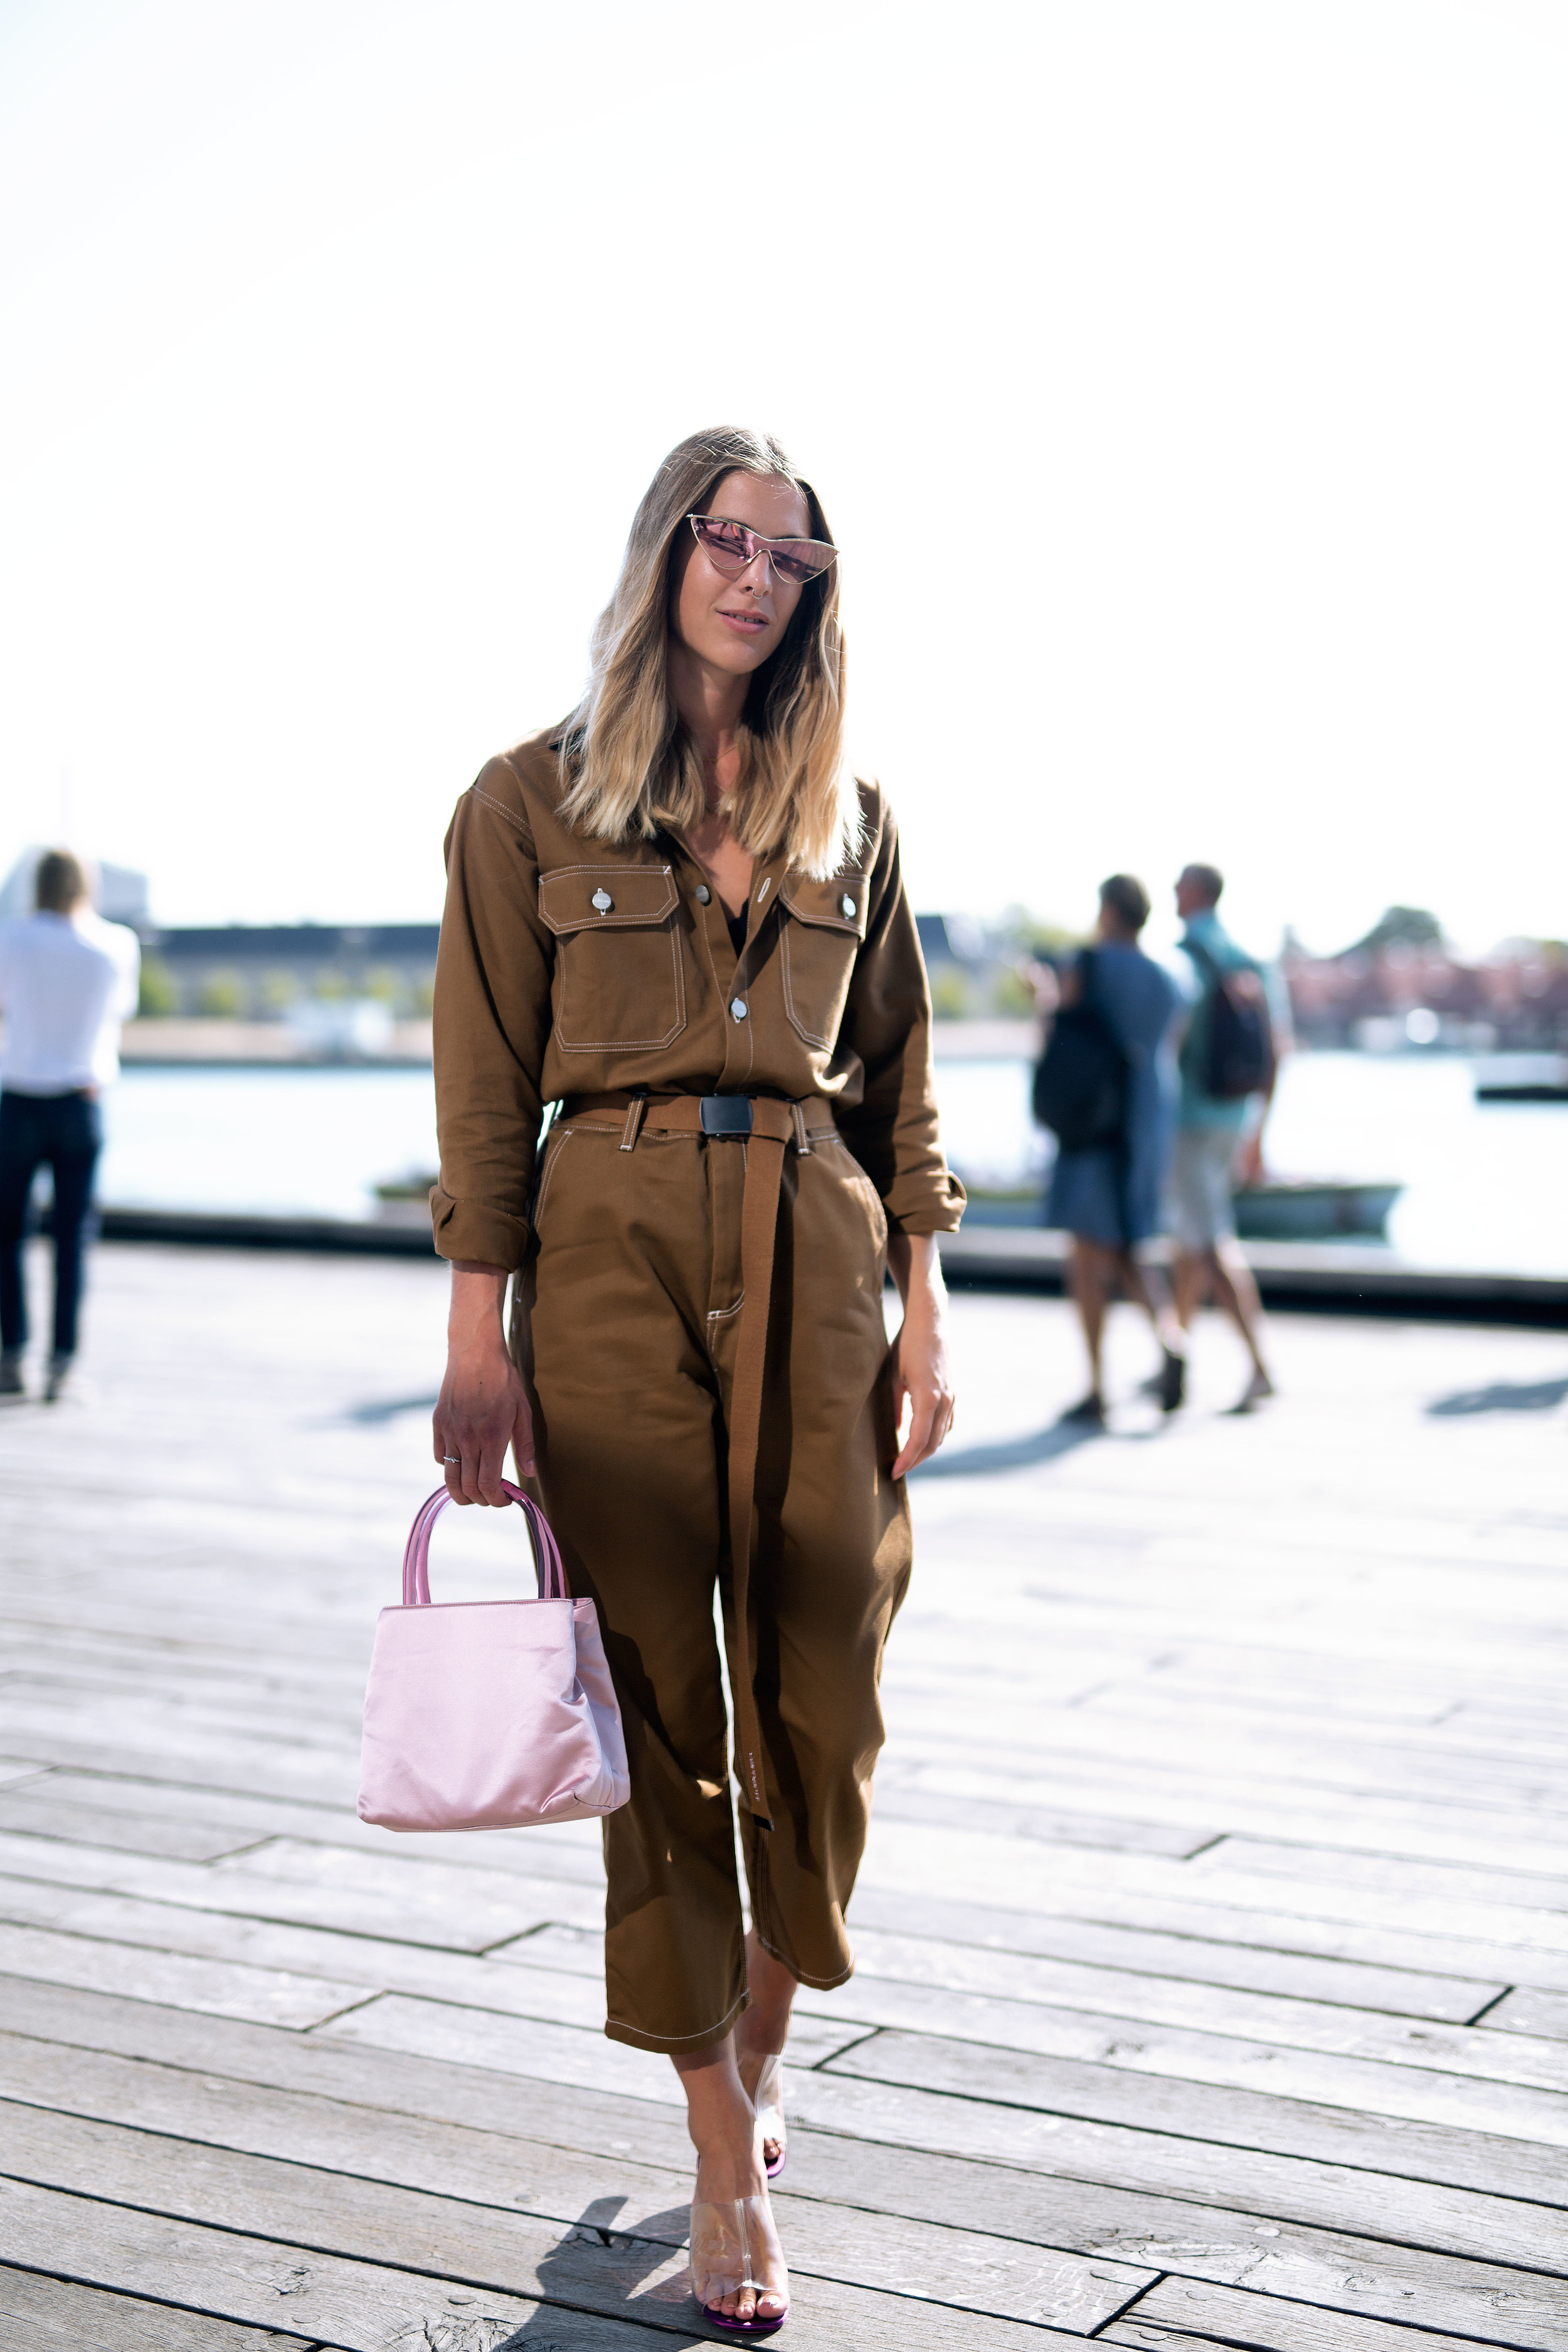 TheStreetland_Copenhagen_Fashion_Week_SS19_44.jpg